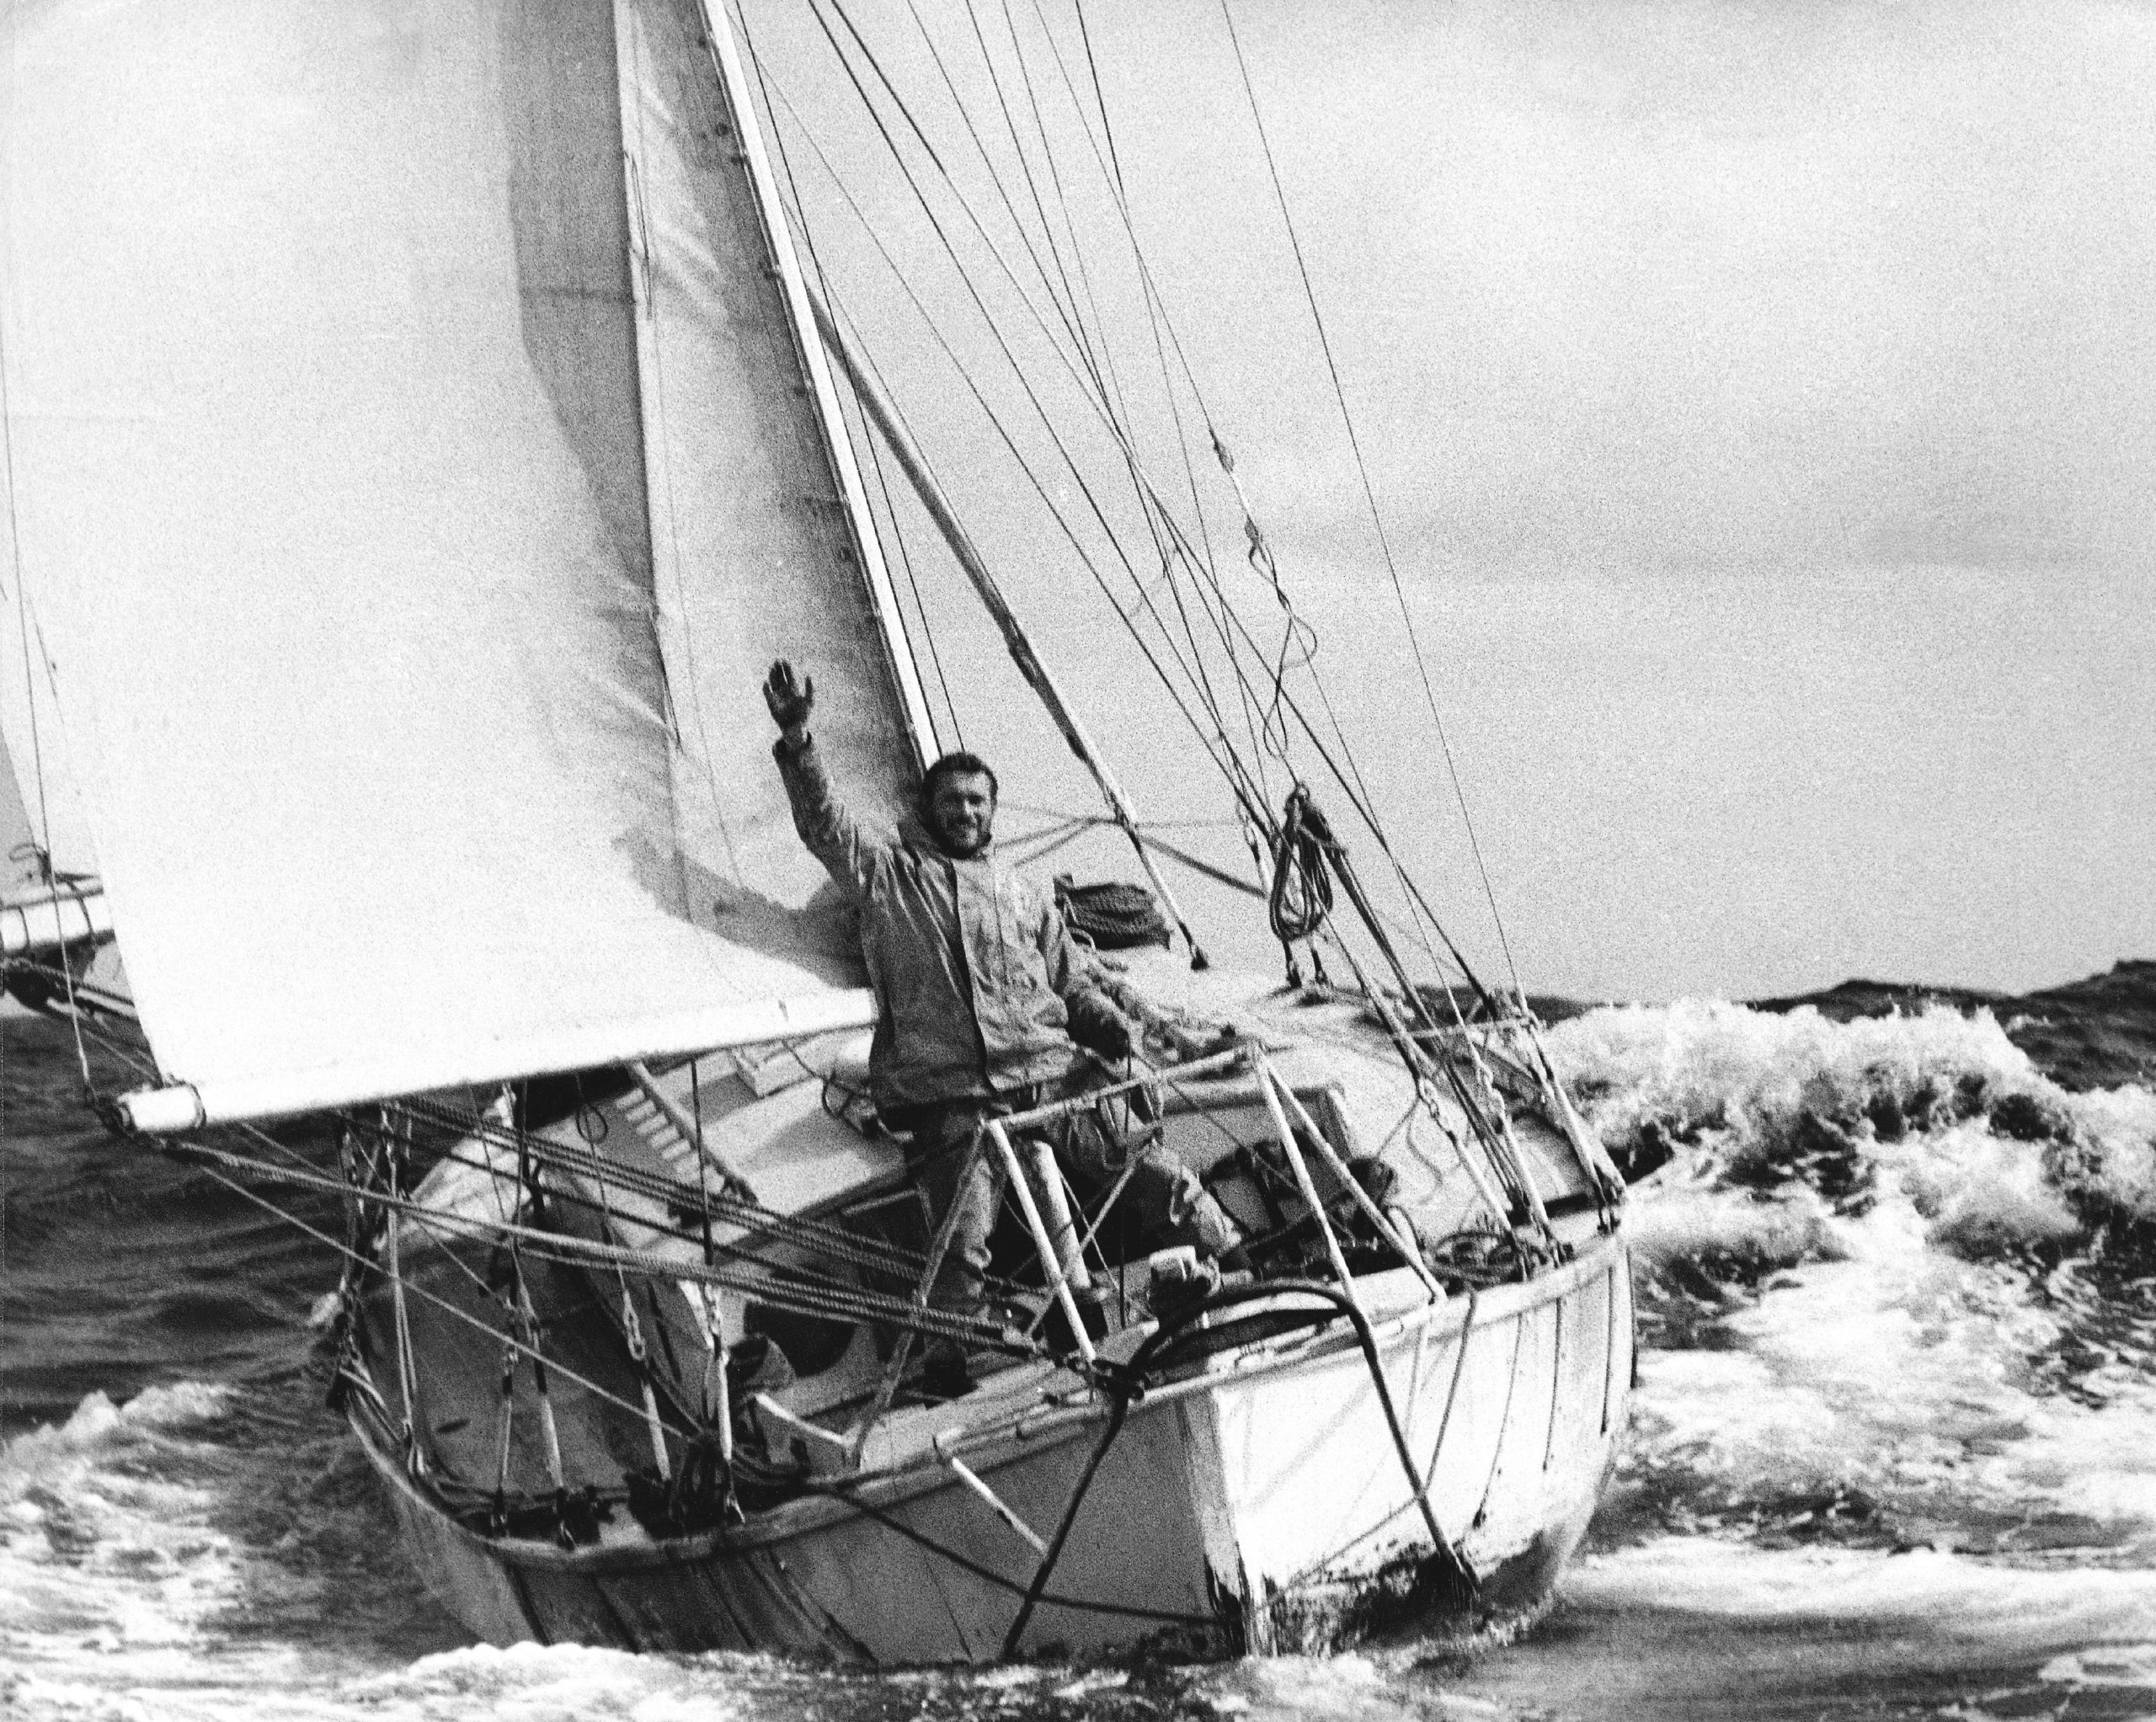 Sir Robin Knox-Johnson aboard his yacht 'Suhaili'